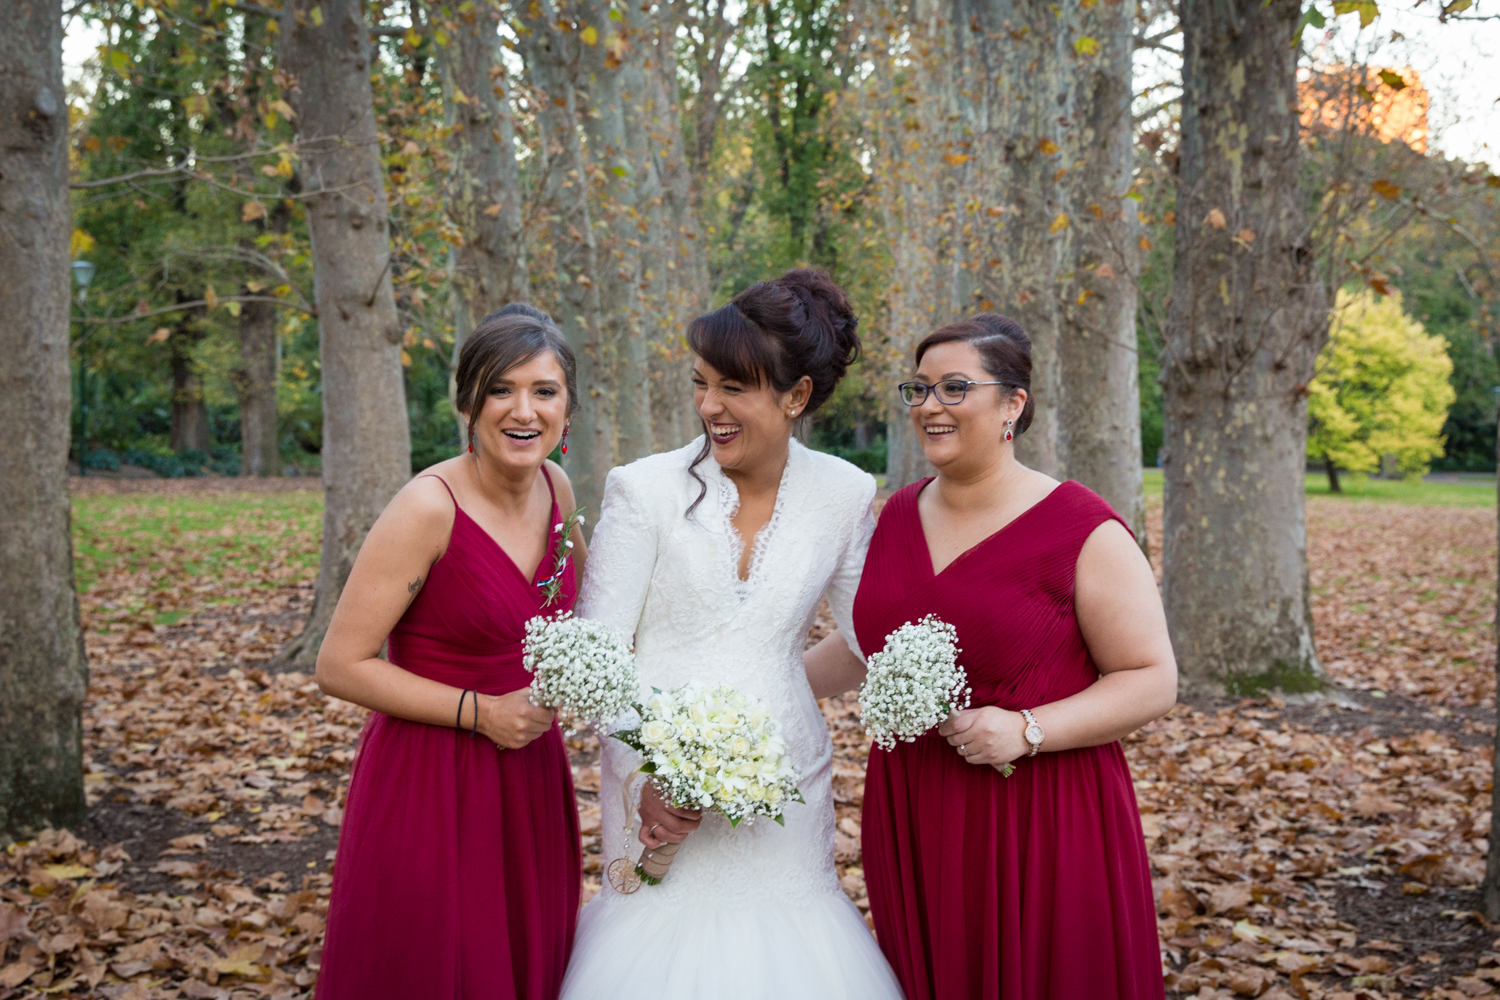 Four Daisies - wedding photography in Melbourne, Yarra Valley, Dandenong Ranges and Mornington Peninsula. Fitzroy Gardens, Melbourne city wedding photography. Bride and bridesmaids in red dresses.